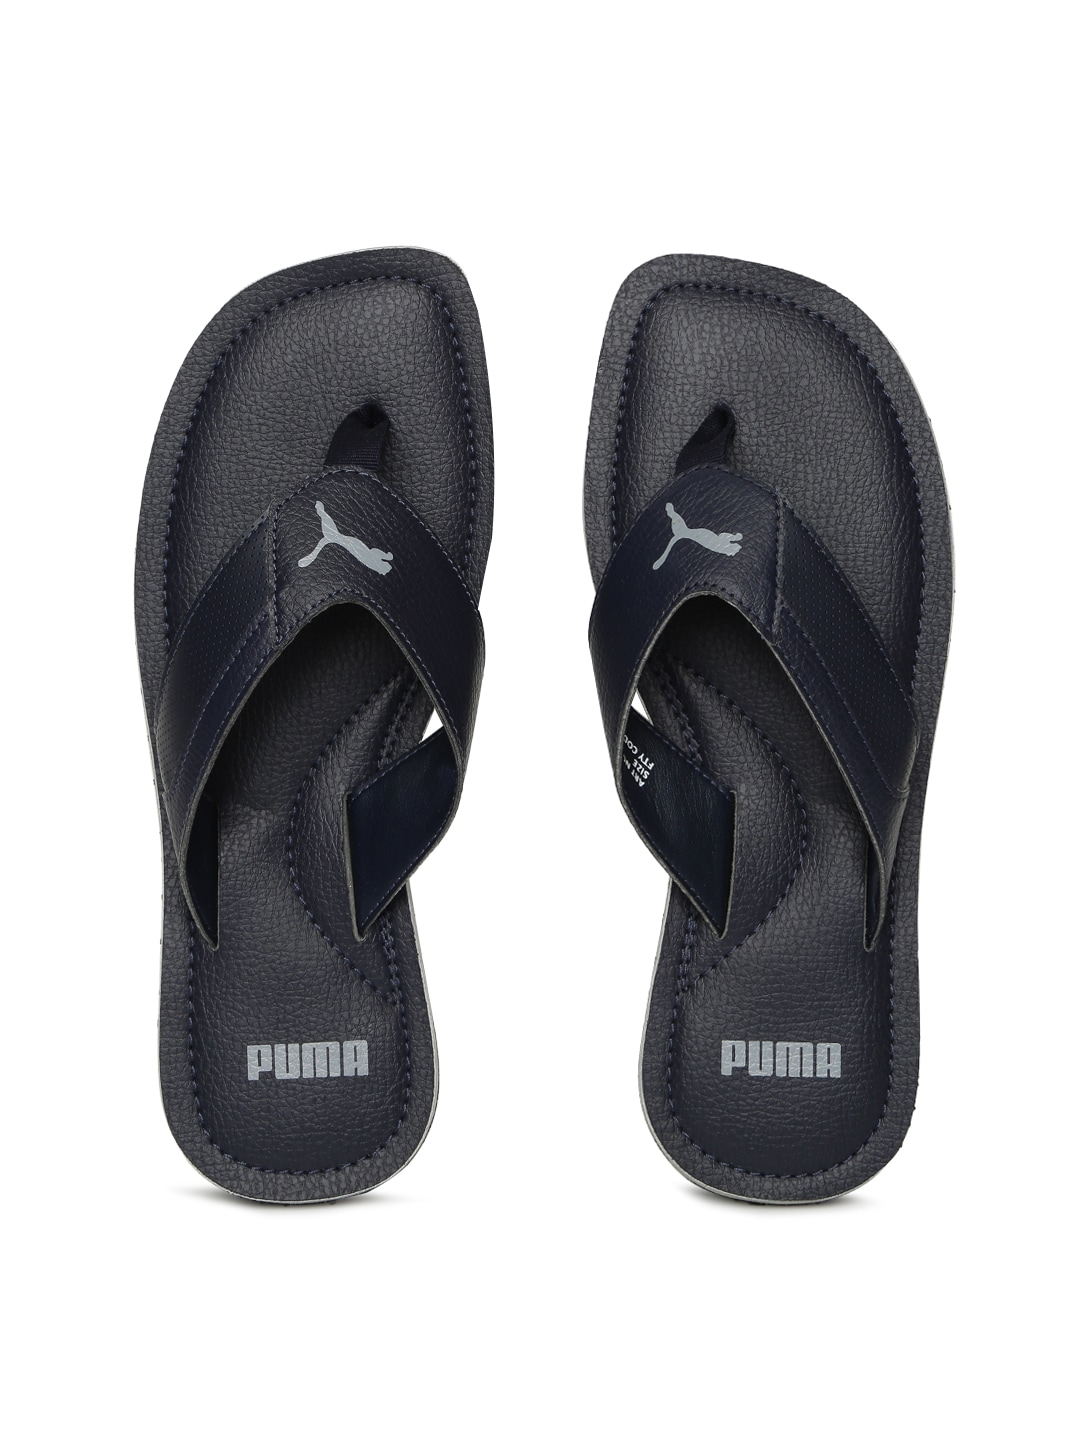 73fbc2b24c91eb Puma Slippers - Buy Puma Slippers Online at Best Price